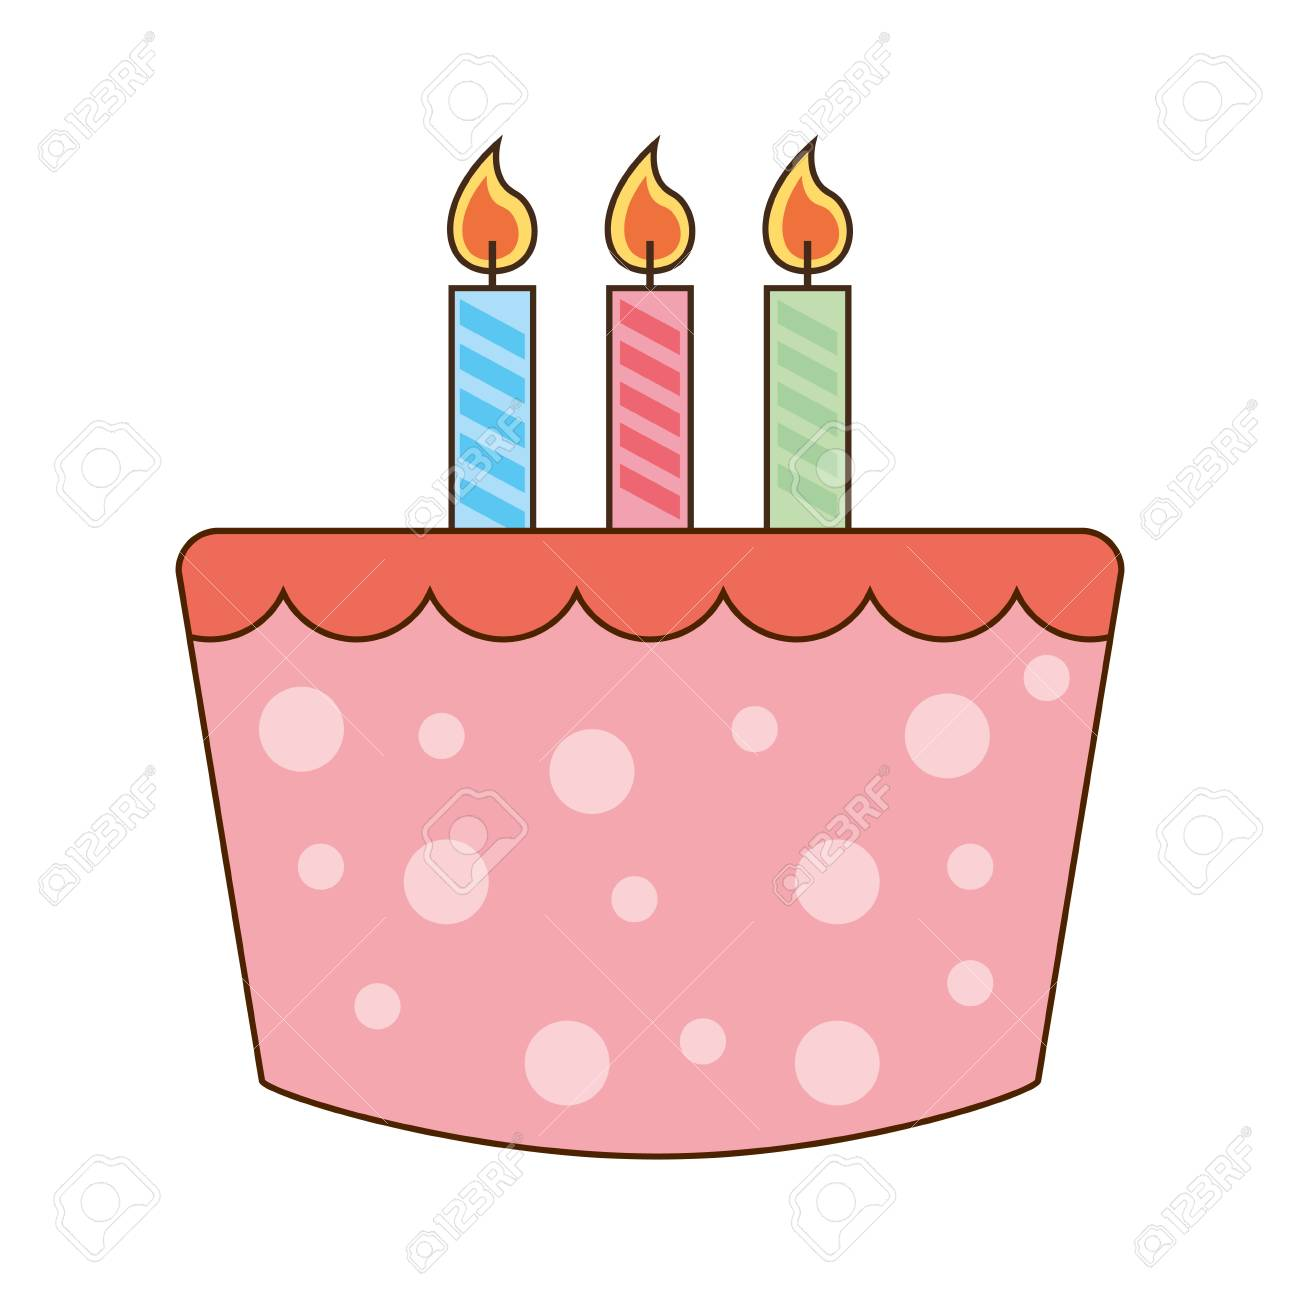 Cake Delicious Candles Birthday Icon Vector Illustration Graphic